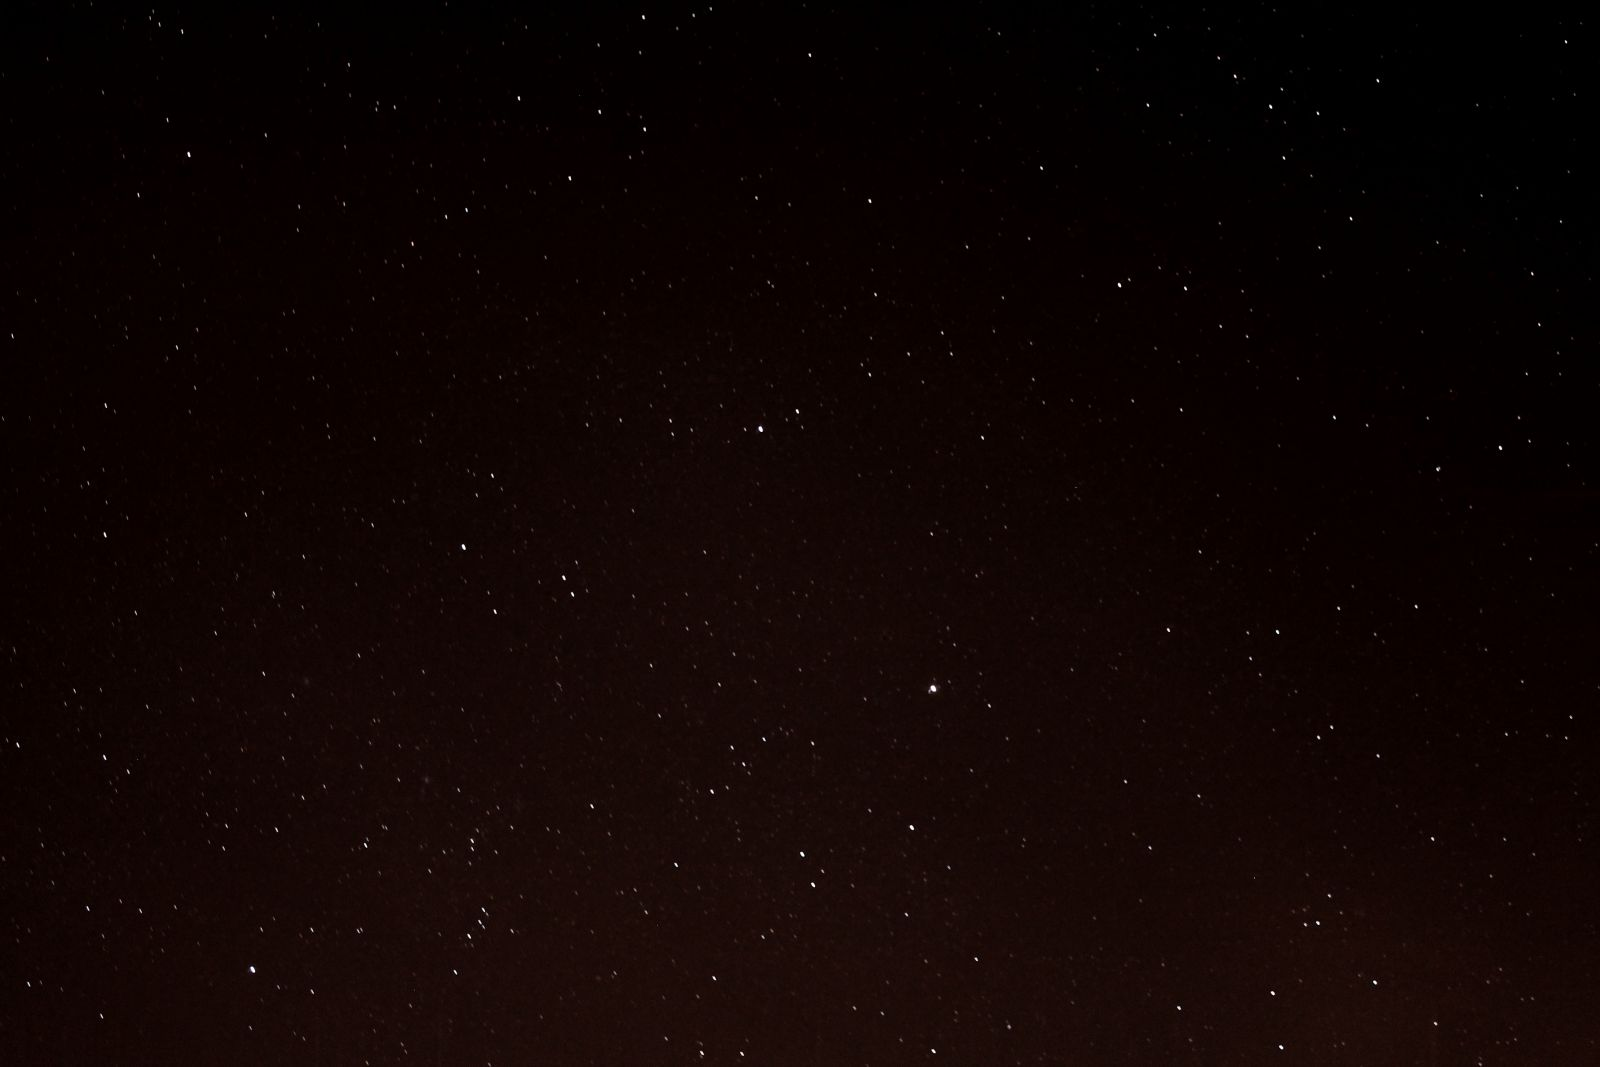 Auriga with M36, M37 and M38 Just Visible